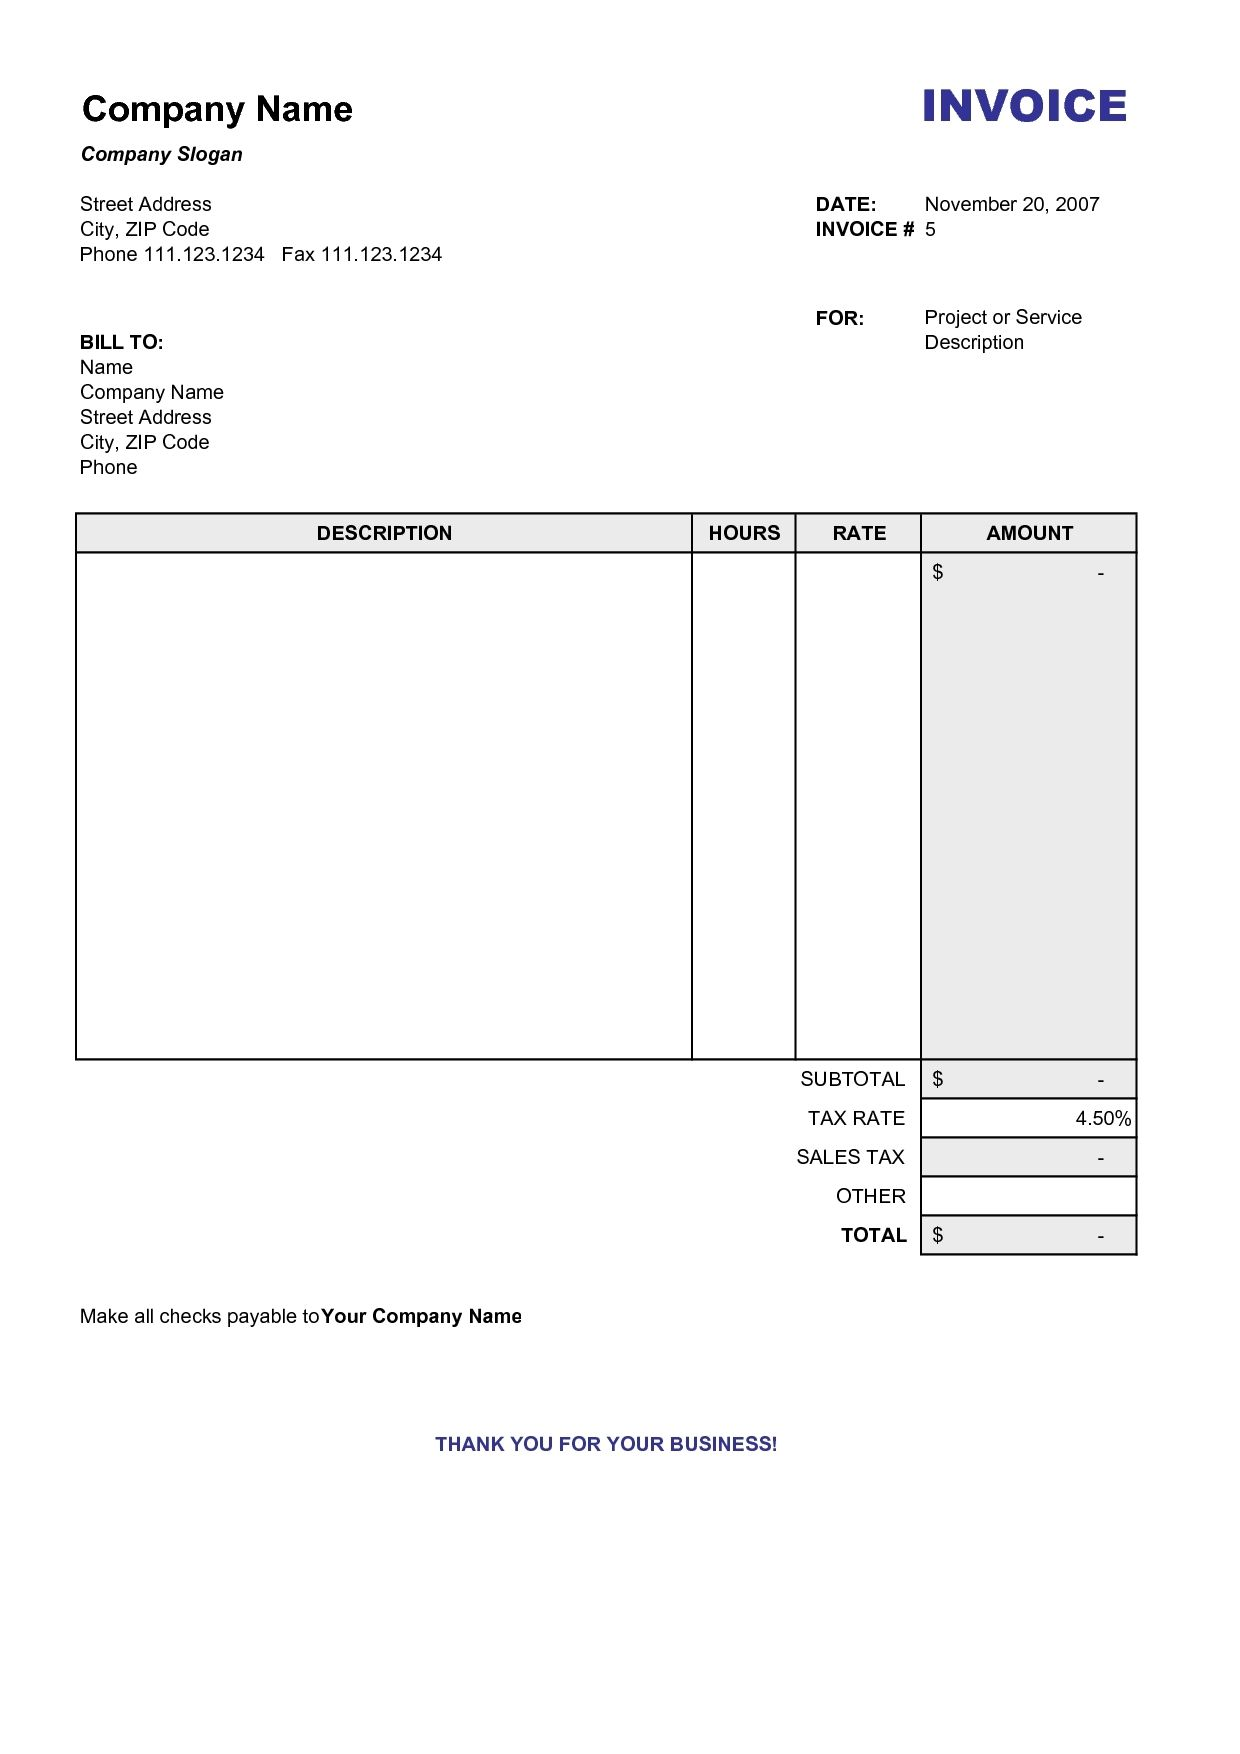 Copy Of A Blank Invoice Invoice Template Free Copy Of Blank - Free billing invoice forms for service business